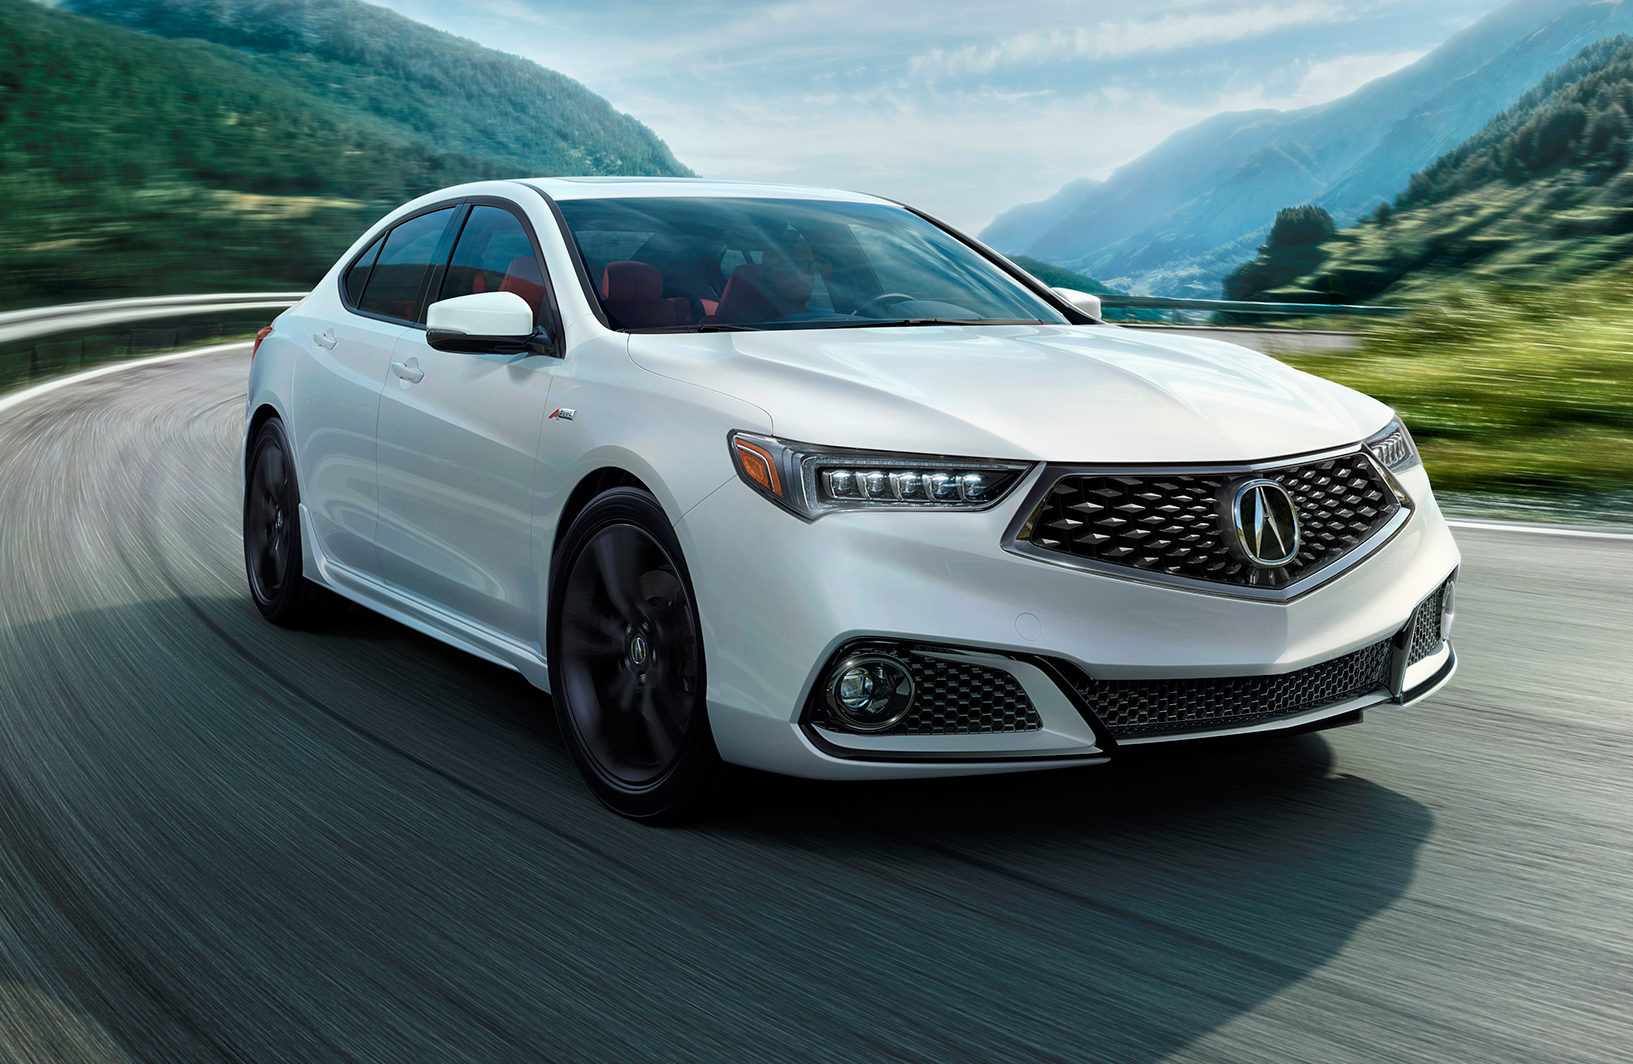 2018 Acura TLX Gets a Midlife Refresh and Brings Back the A-Spec Package | Automobile Magazine